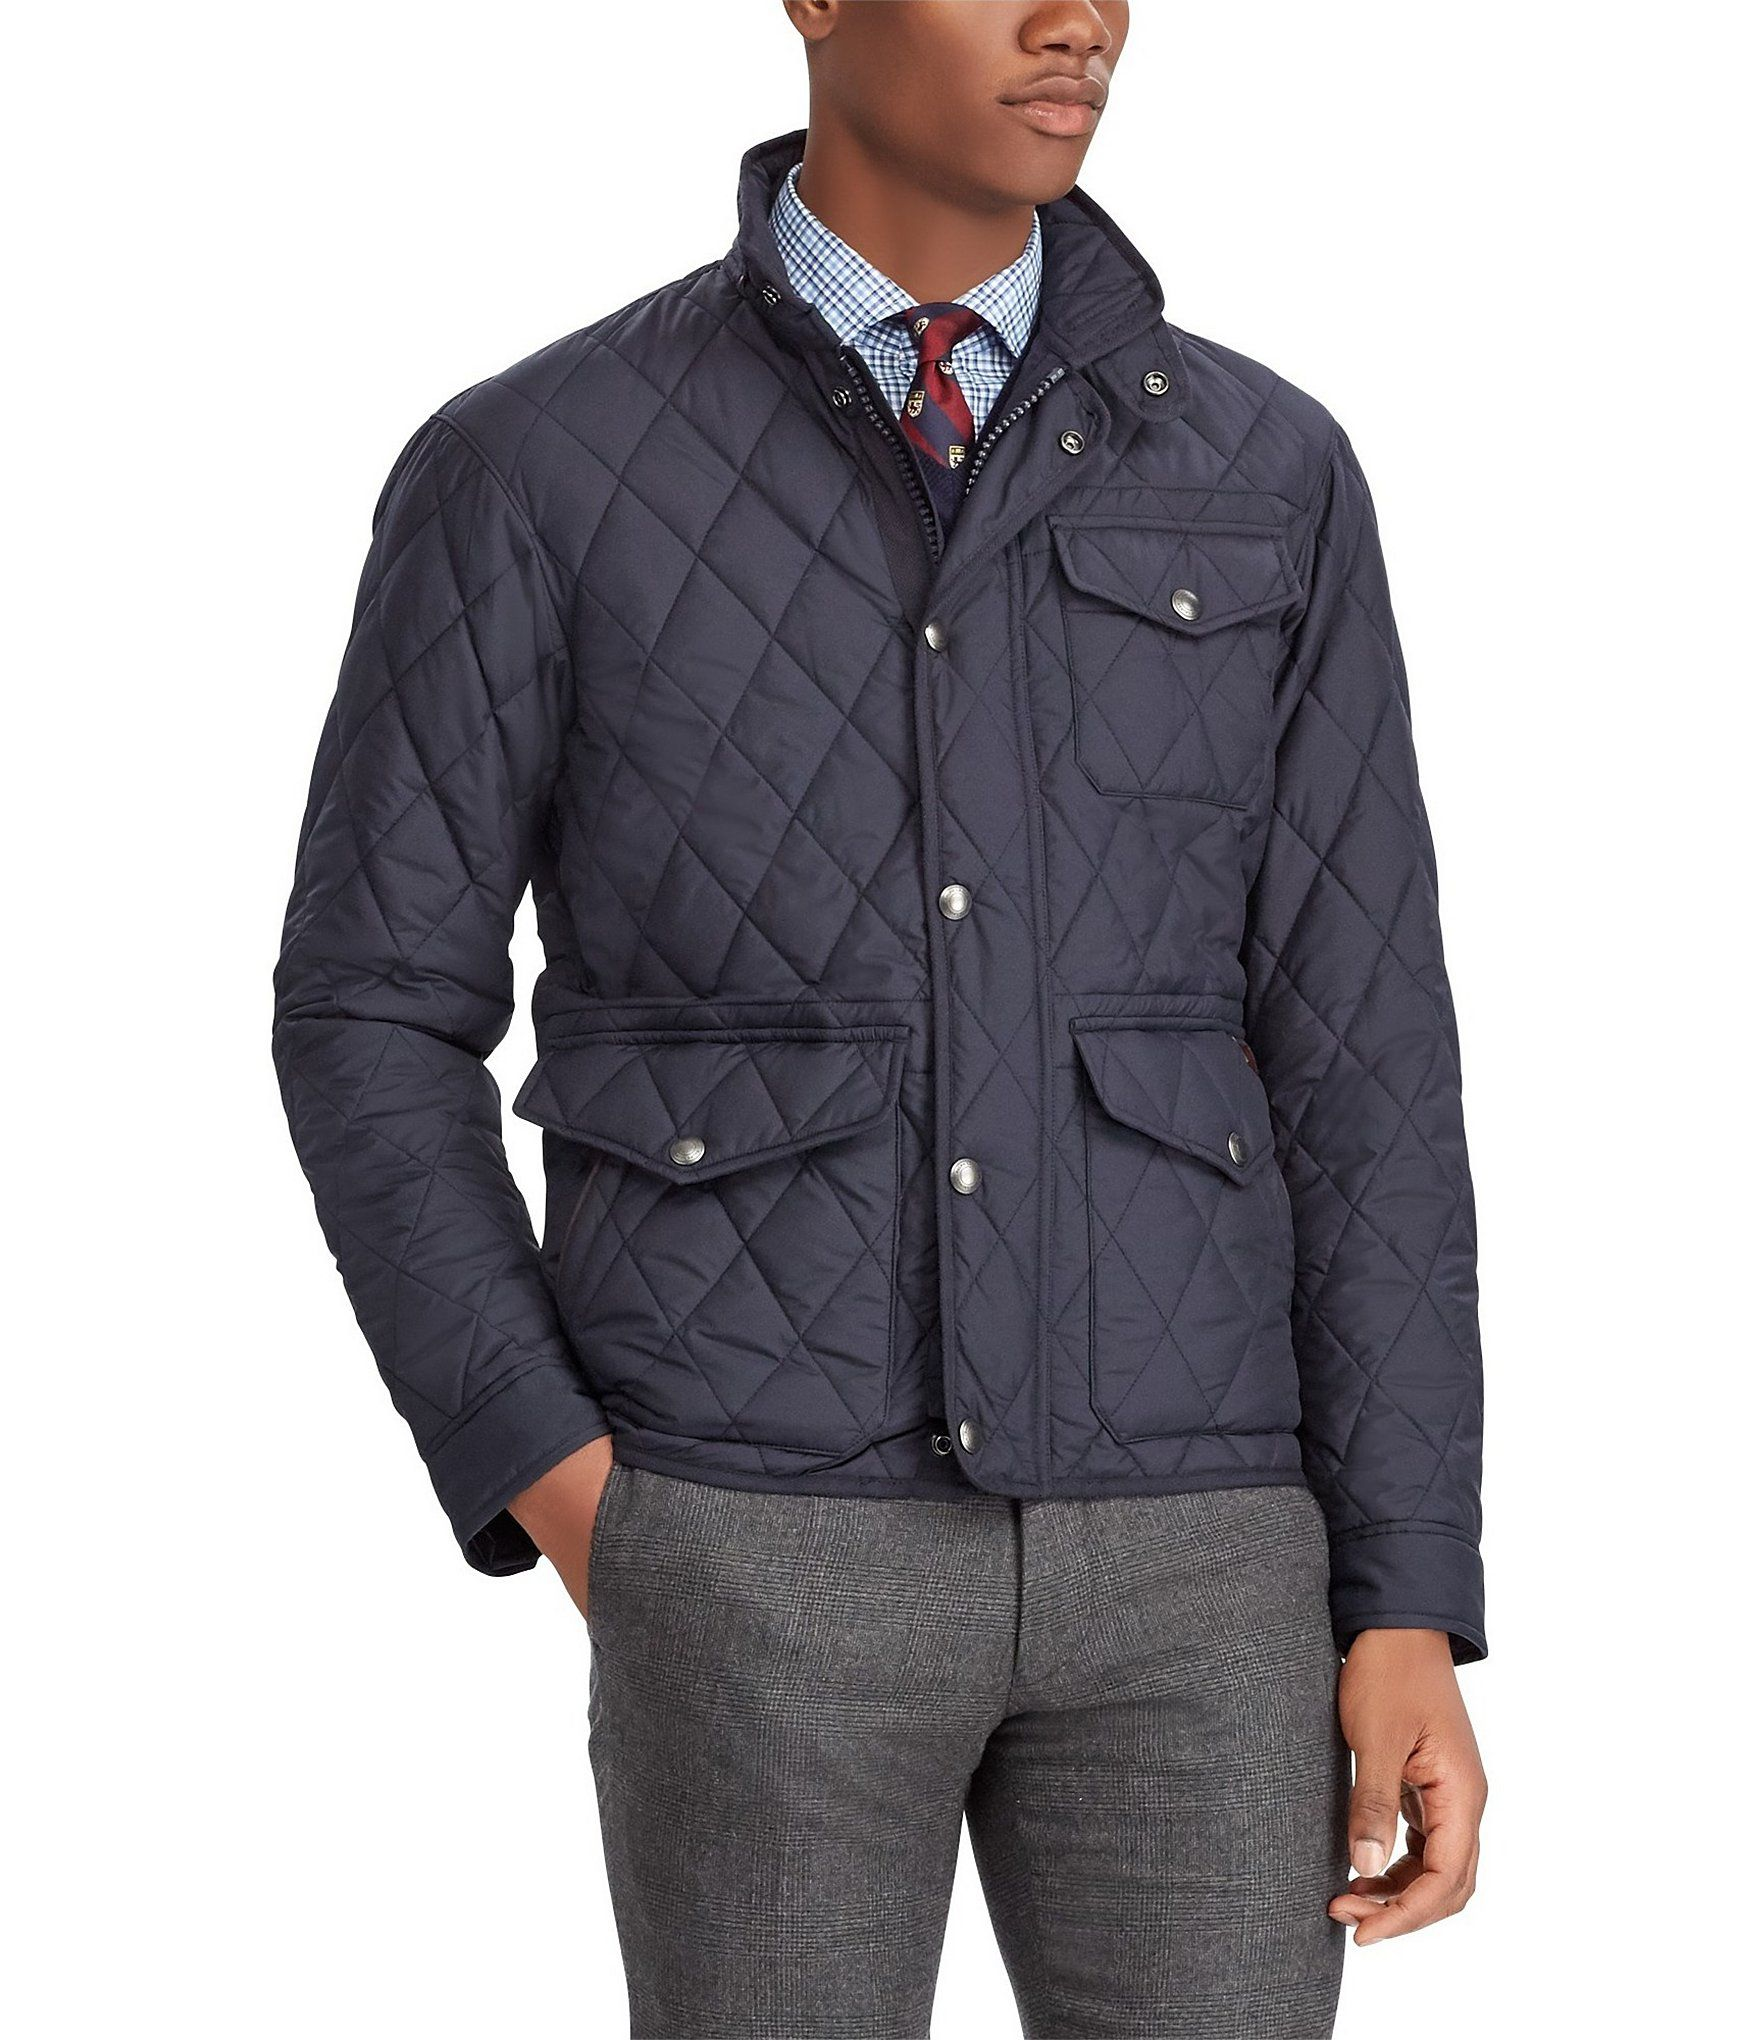 Shop For Polo Ralph Lauren Big Tall Quilted Jacket At Dillards Com Visit Dillards Com To Find Clothing Acces Quilted Jacket Men Quilted Jacket Mens Jackets